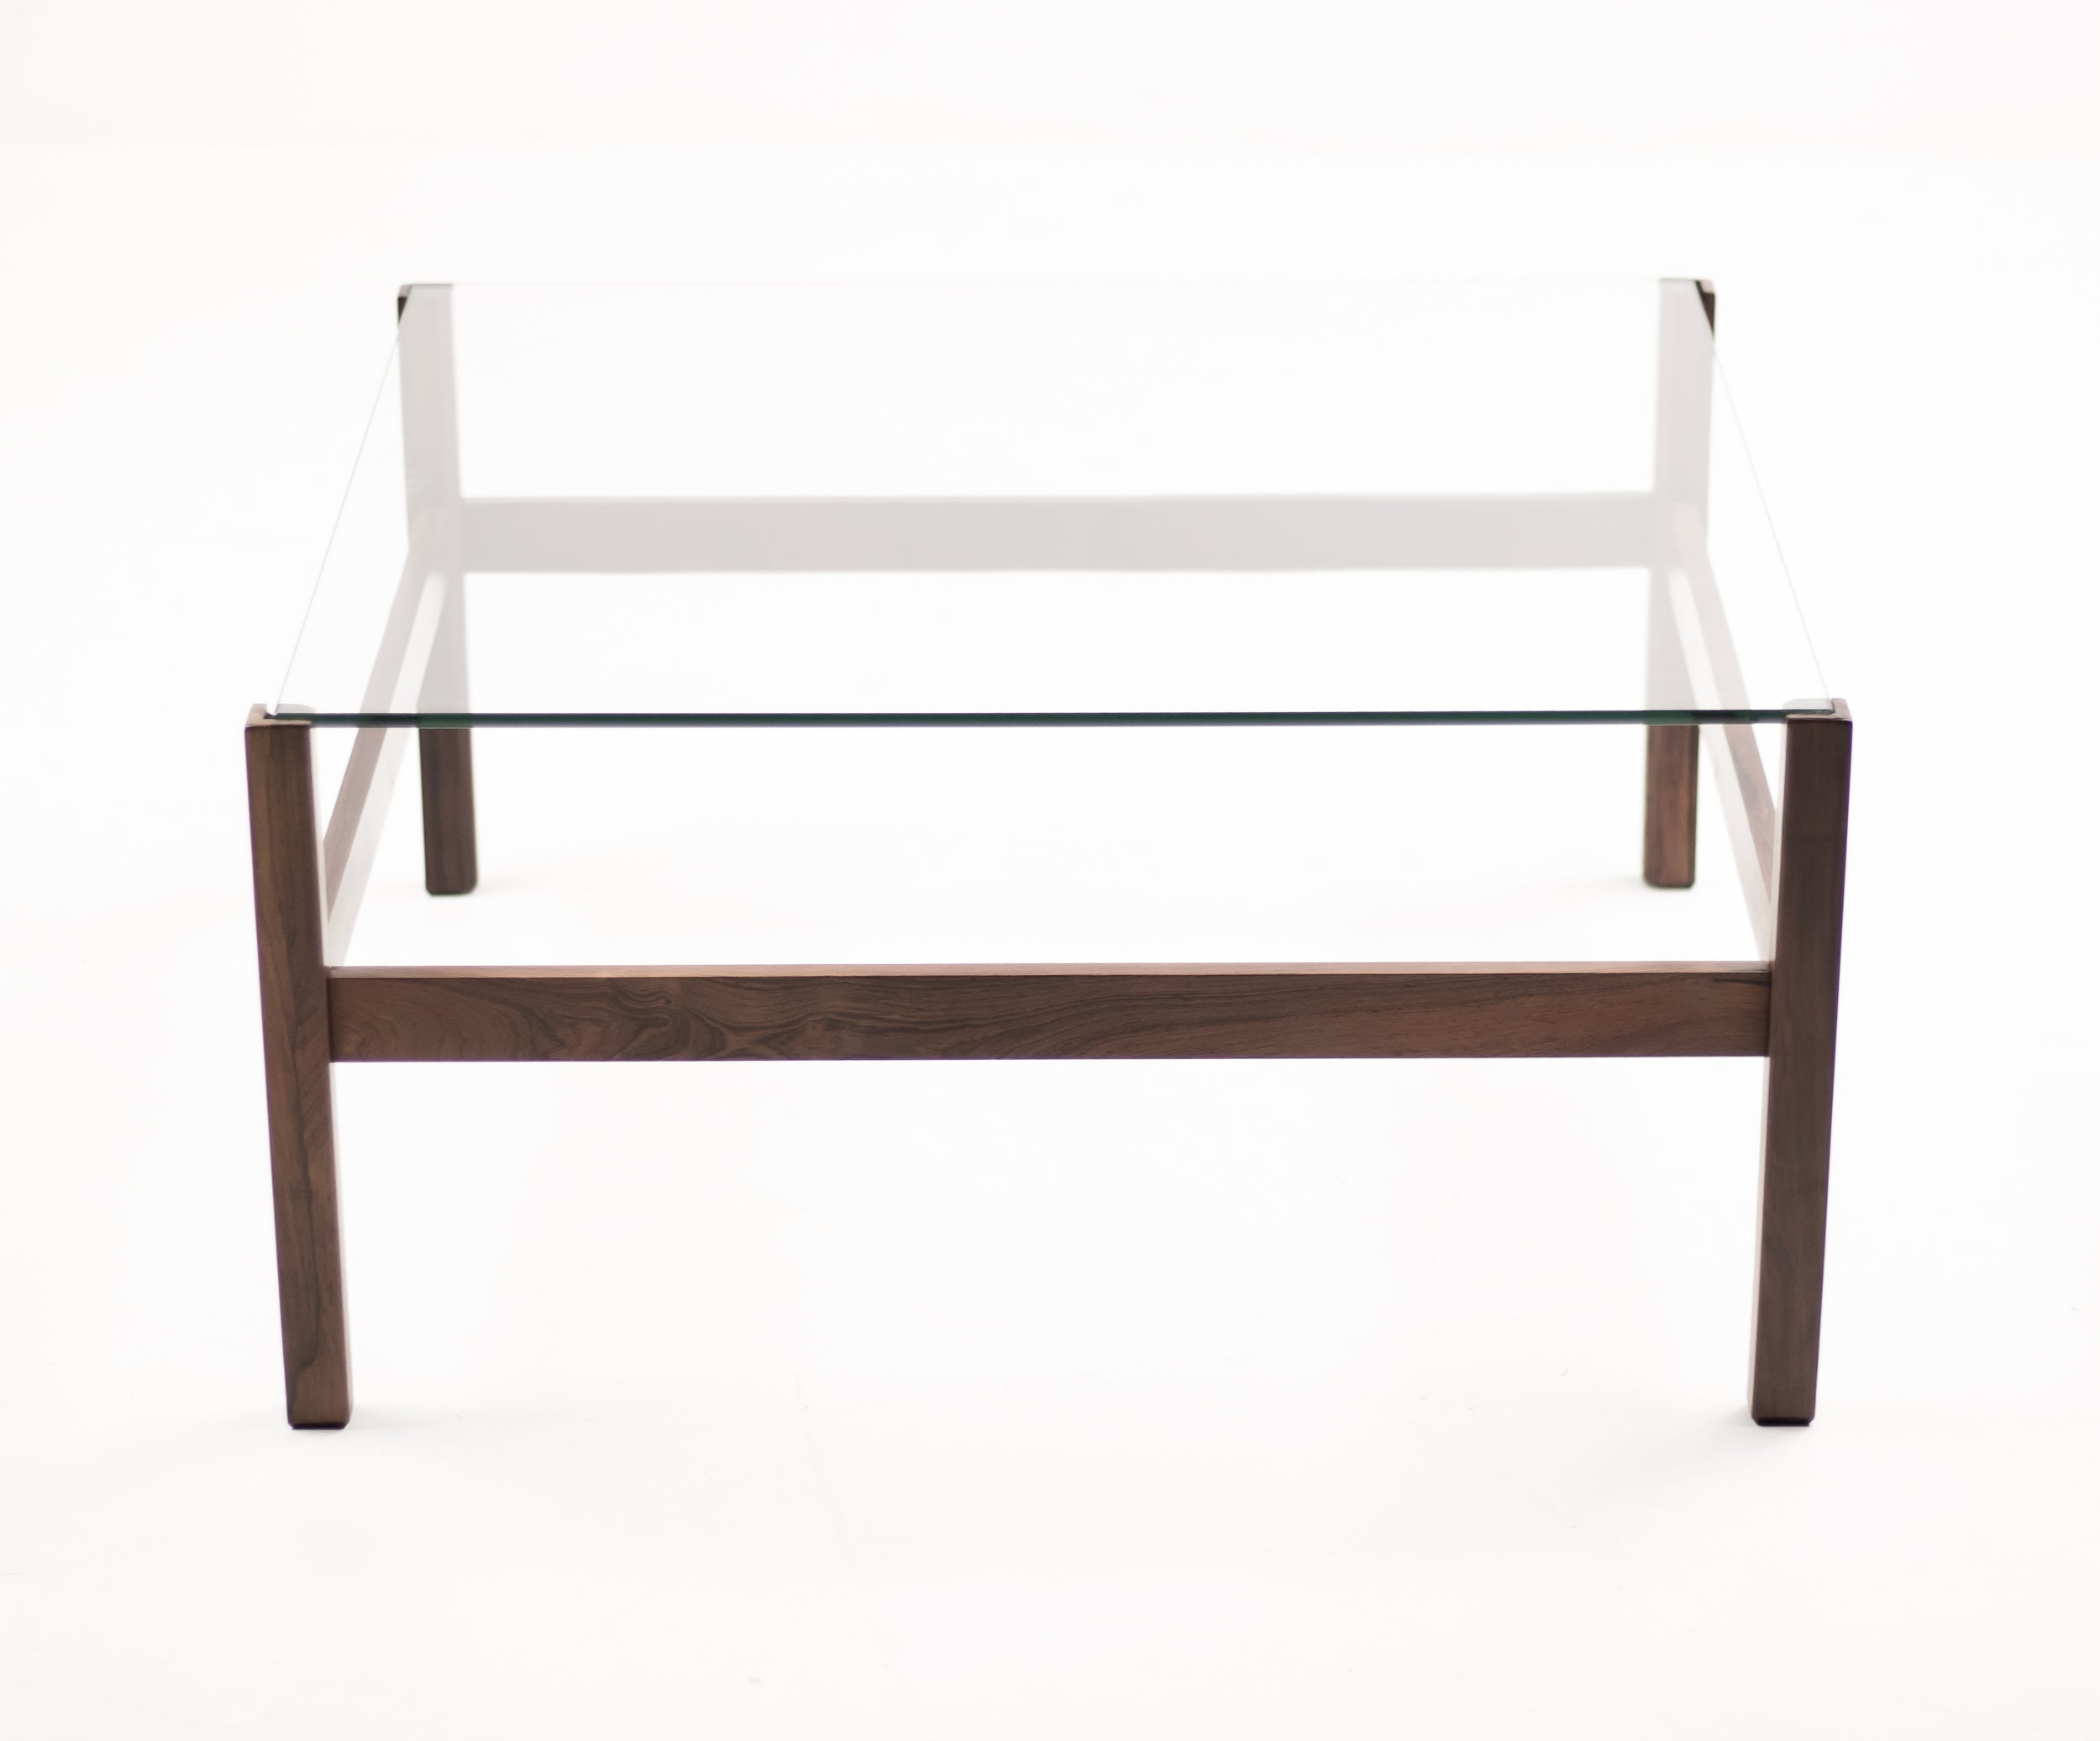 Fantastic Architectural Rosewood Coffee Table Machost Co Dining Chair Design Ideas Machostcouk